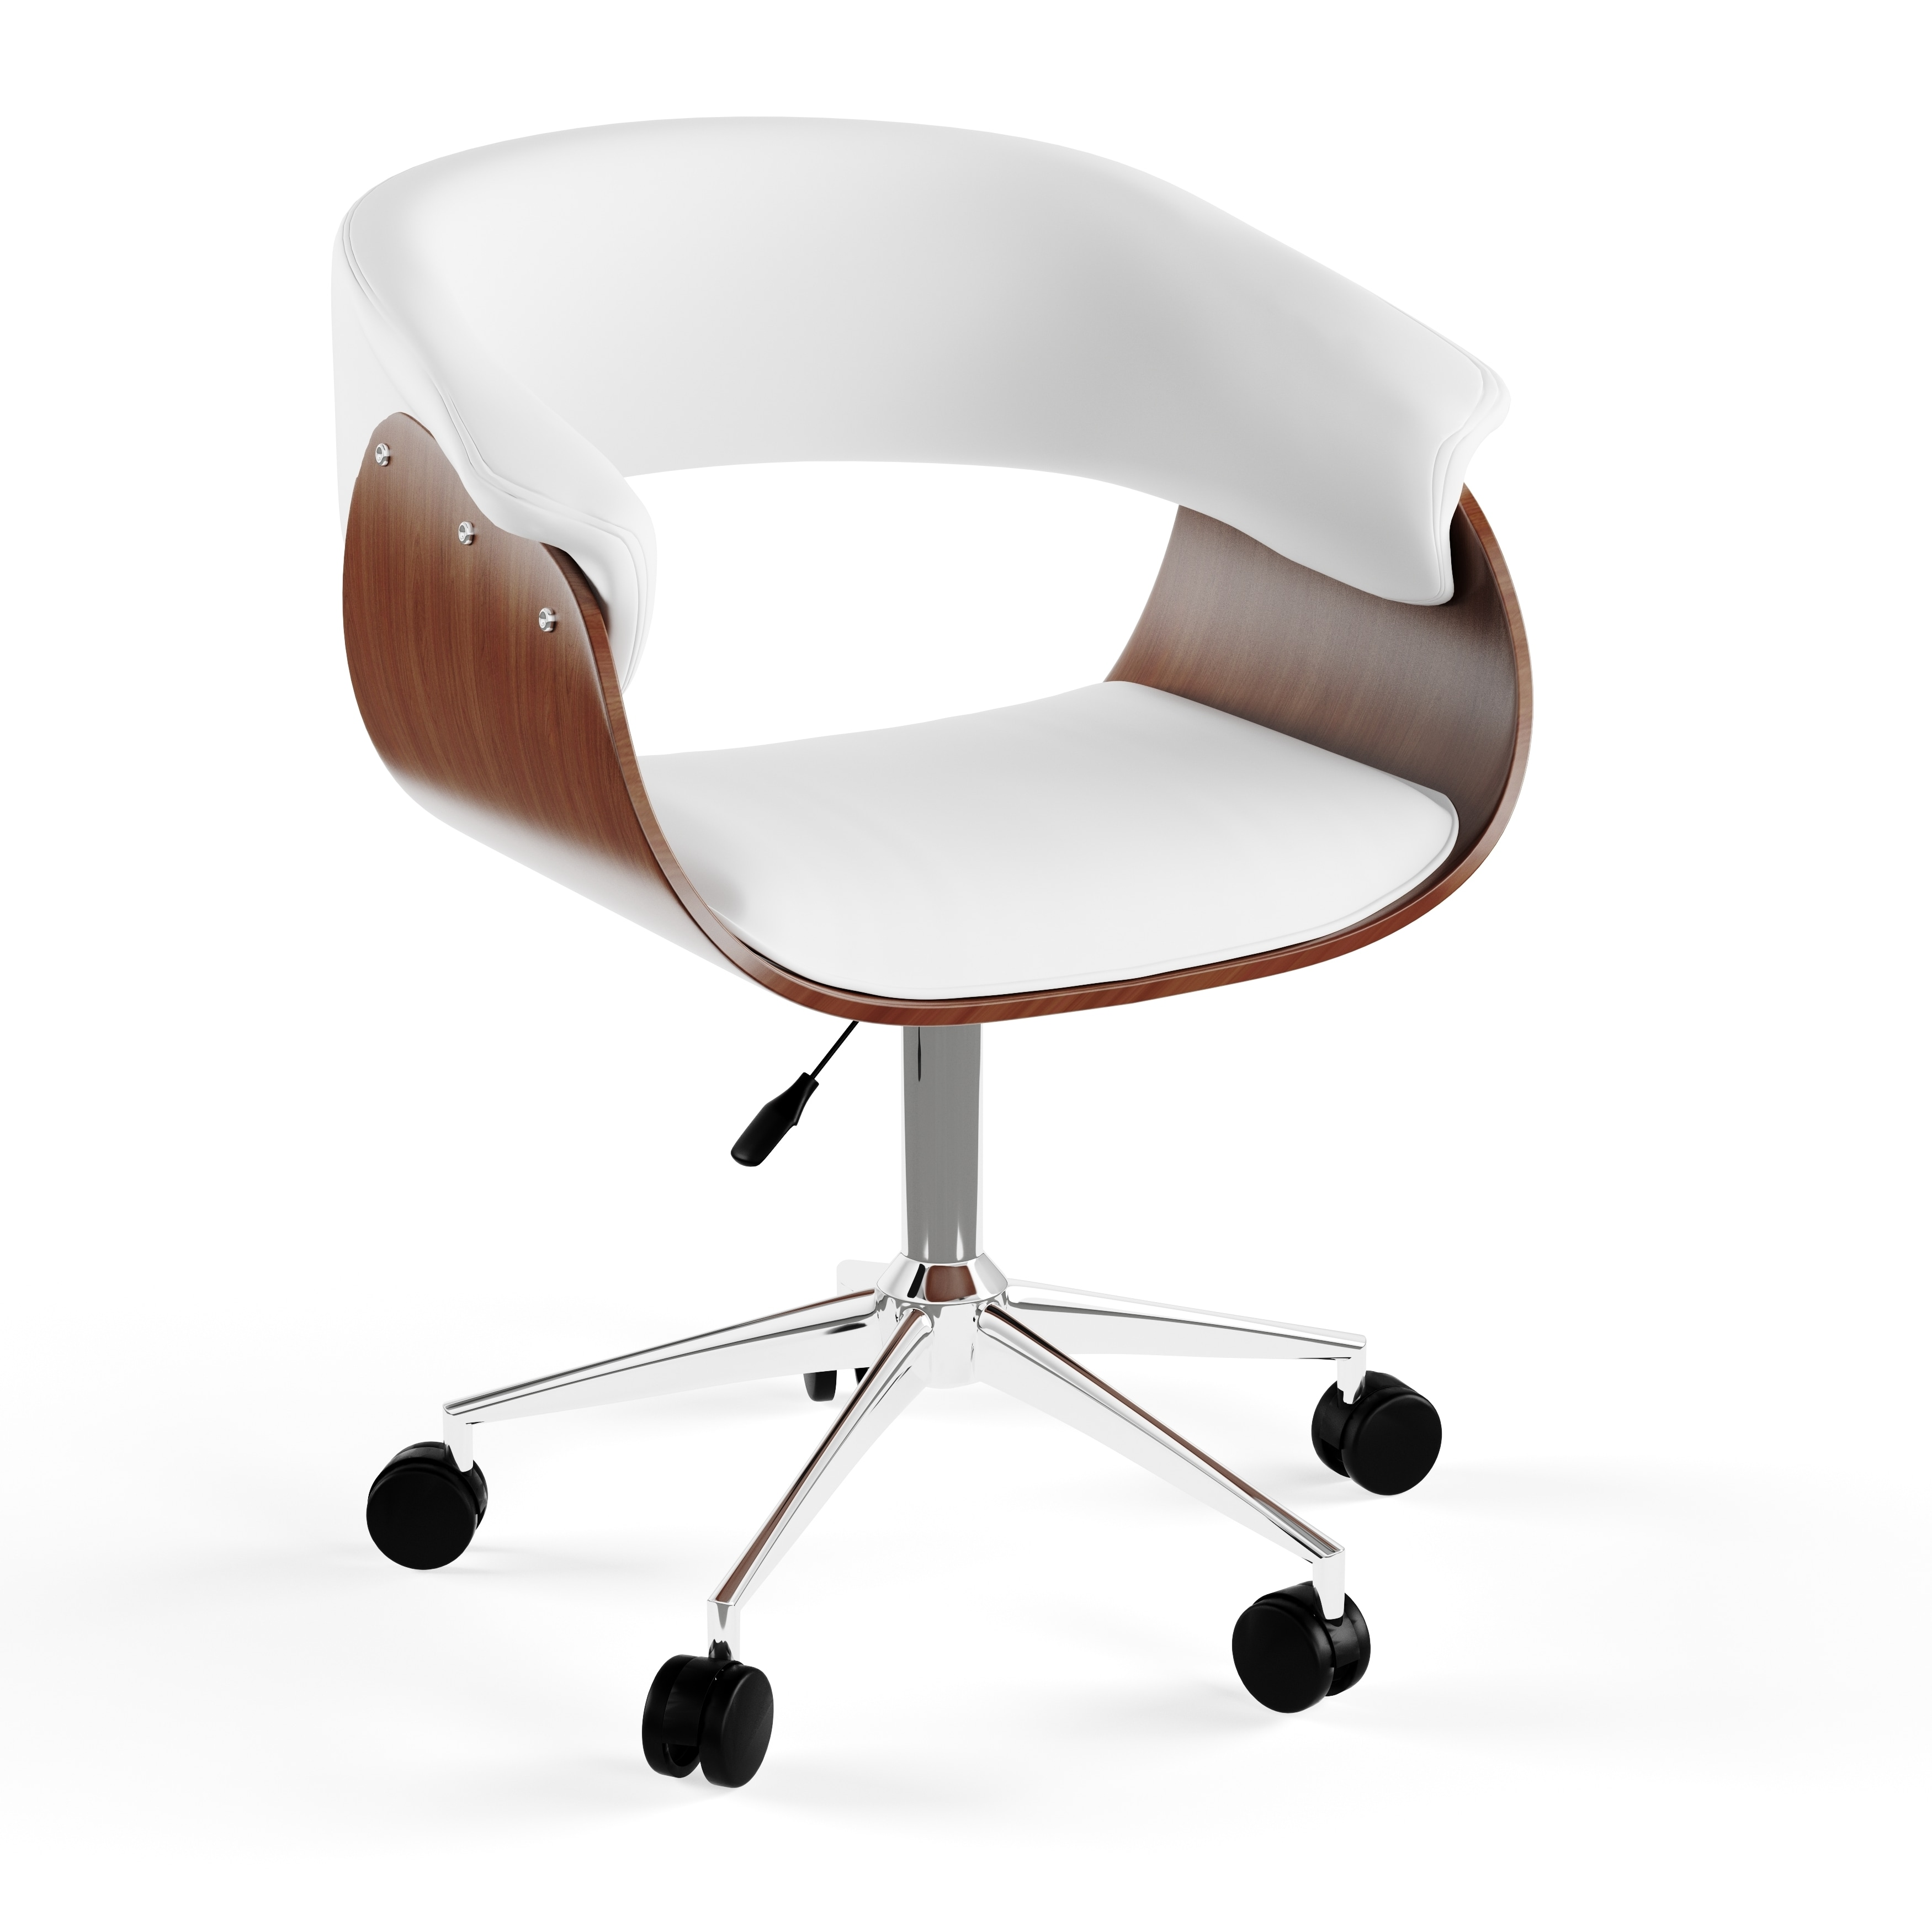 by nestingstacking home furniture ergonomic at office back body blackplatinum flex chair hon chairs depot fice ideas motivate